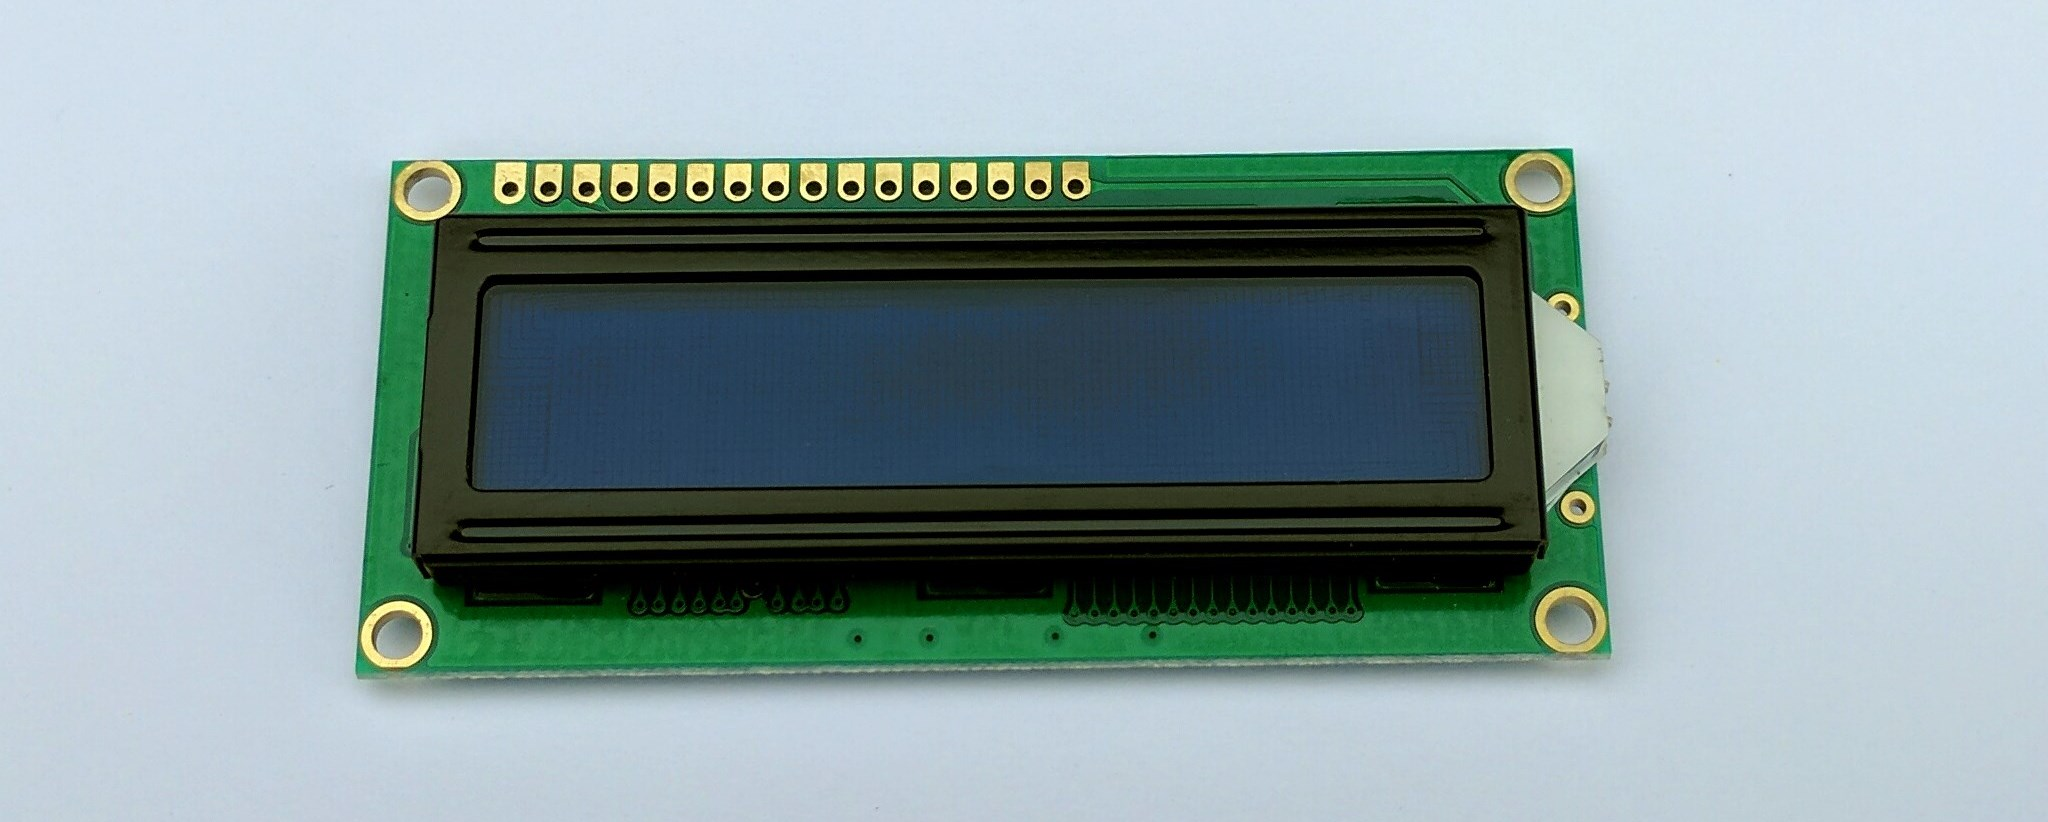 Download lcd.h library arduino